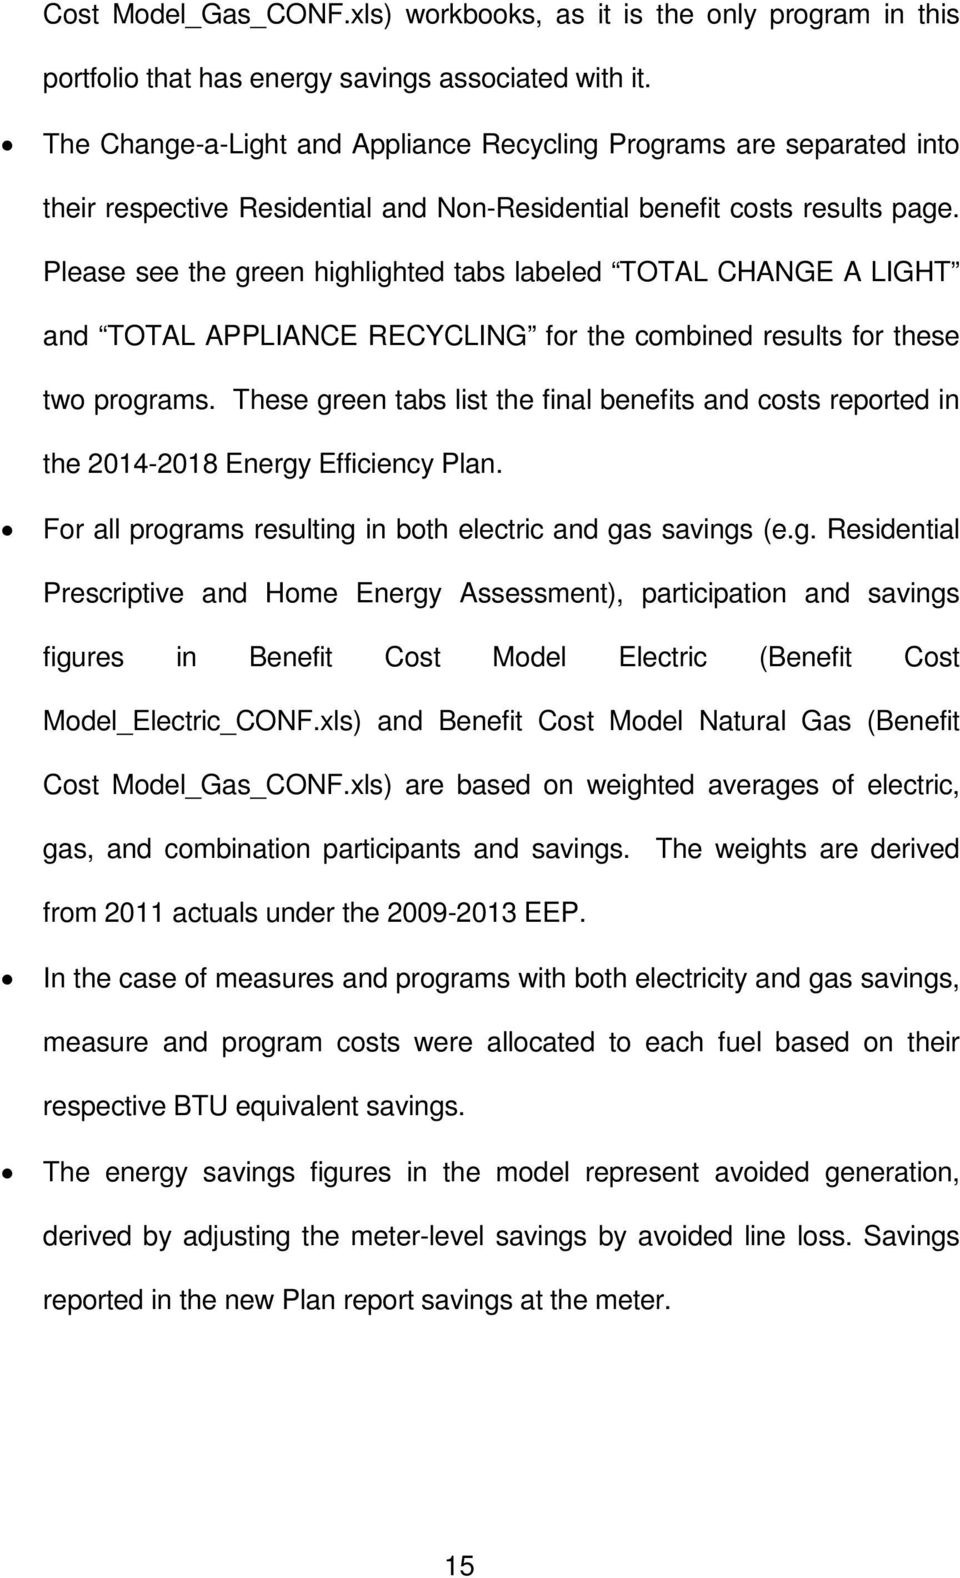 Please see the green highlighted tabs labeled TOTAL CHANGE A LIGHT and TOTAL APPLIANCE RECYCLING for the combined results for these two programs.